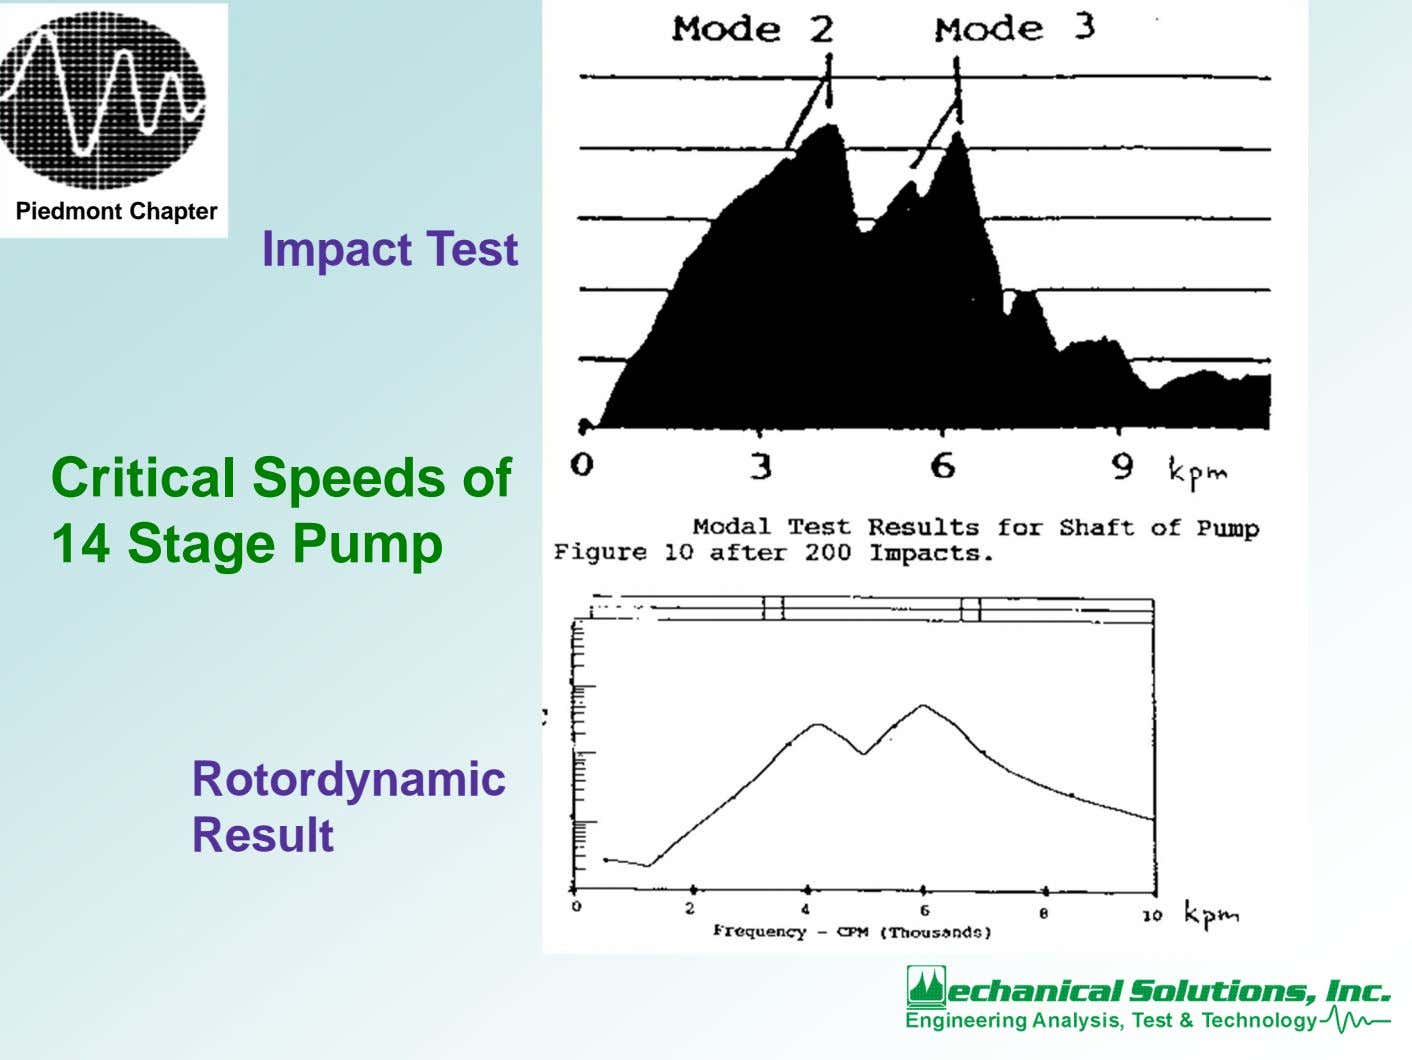 Piedmont Chapter Impact Test Critical Speeds of 14 Stage Pump Rotordynamic Result